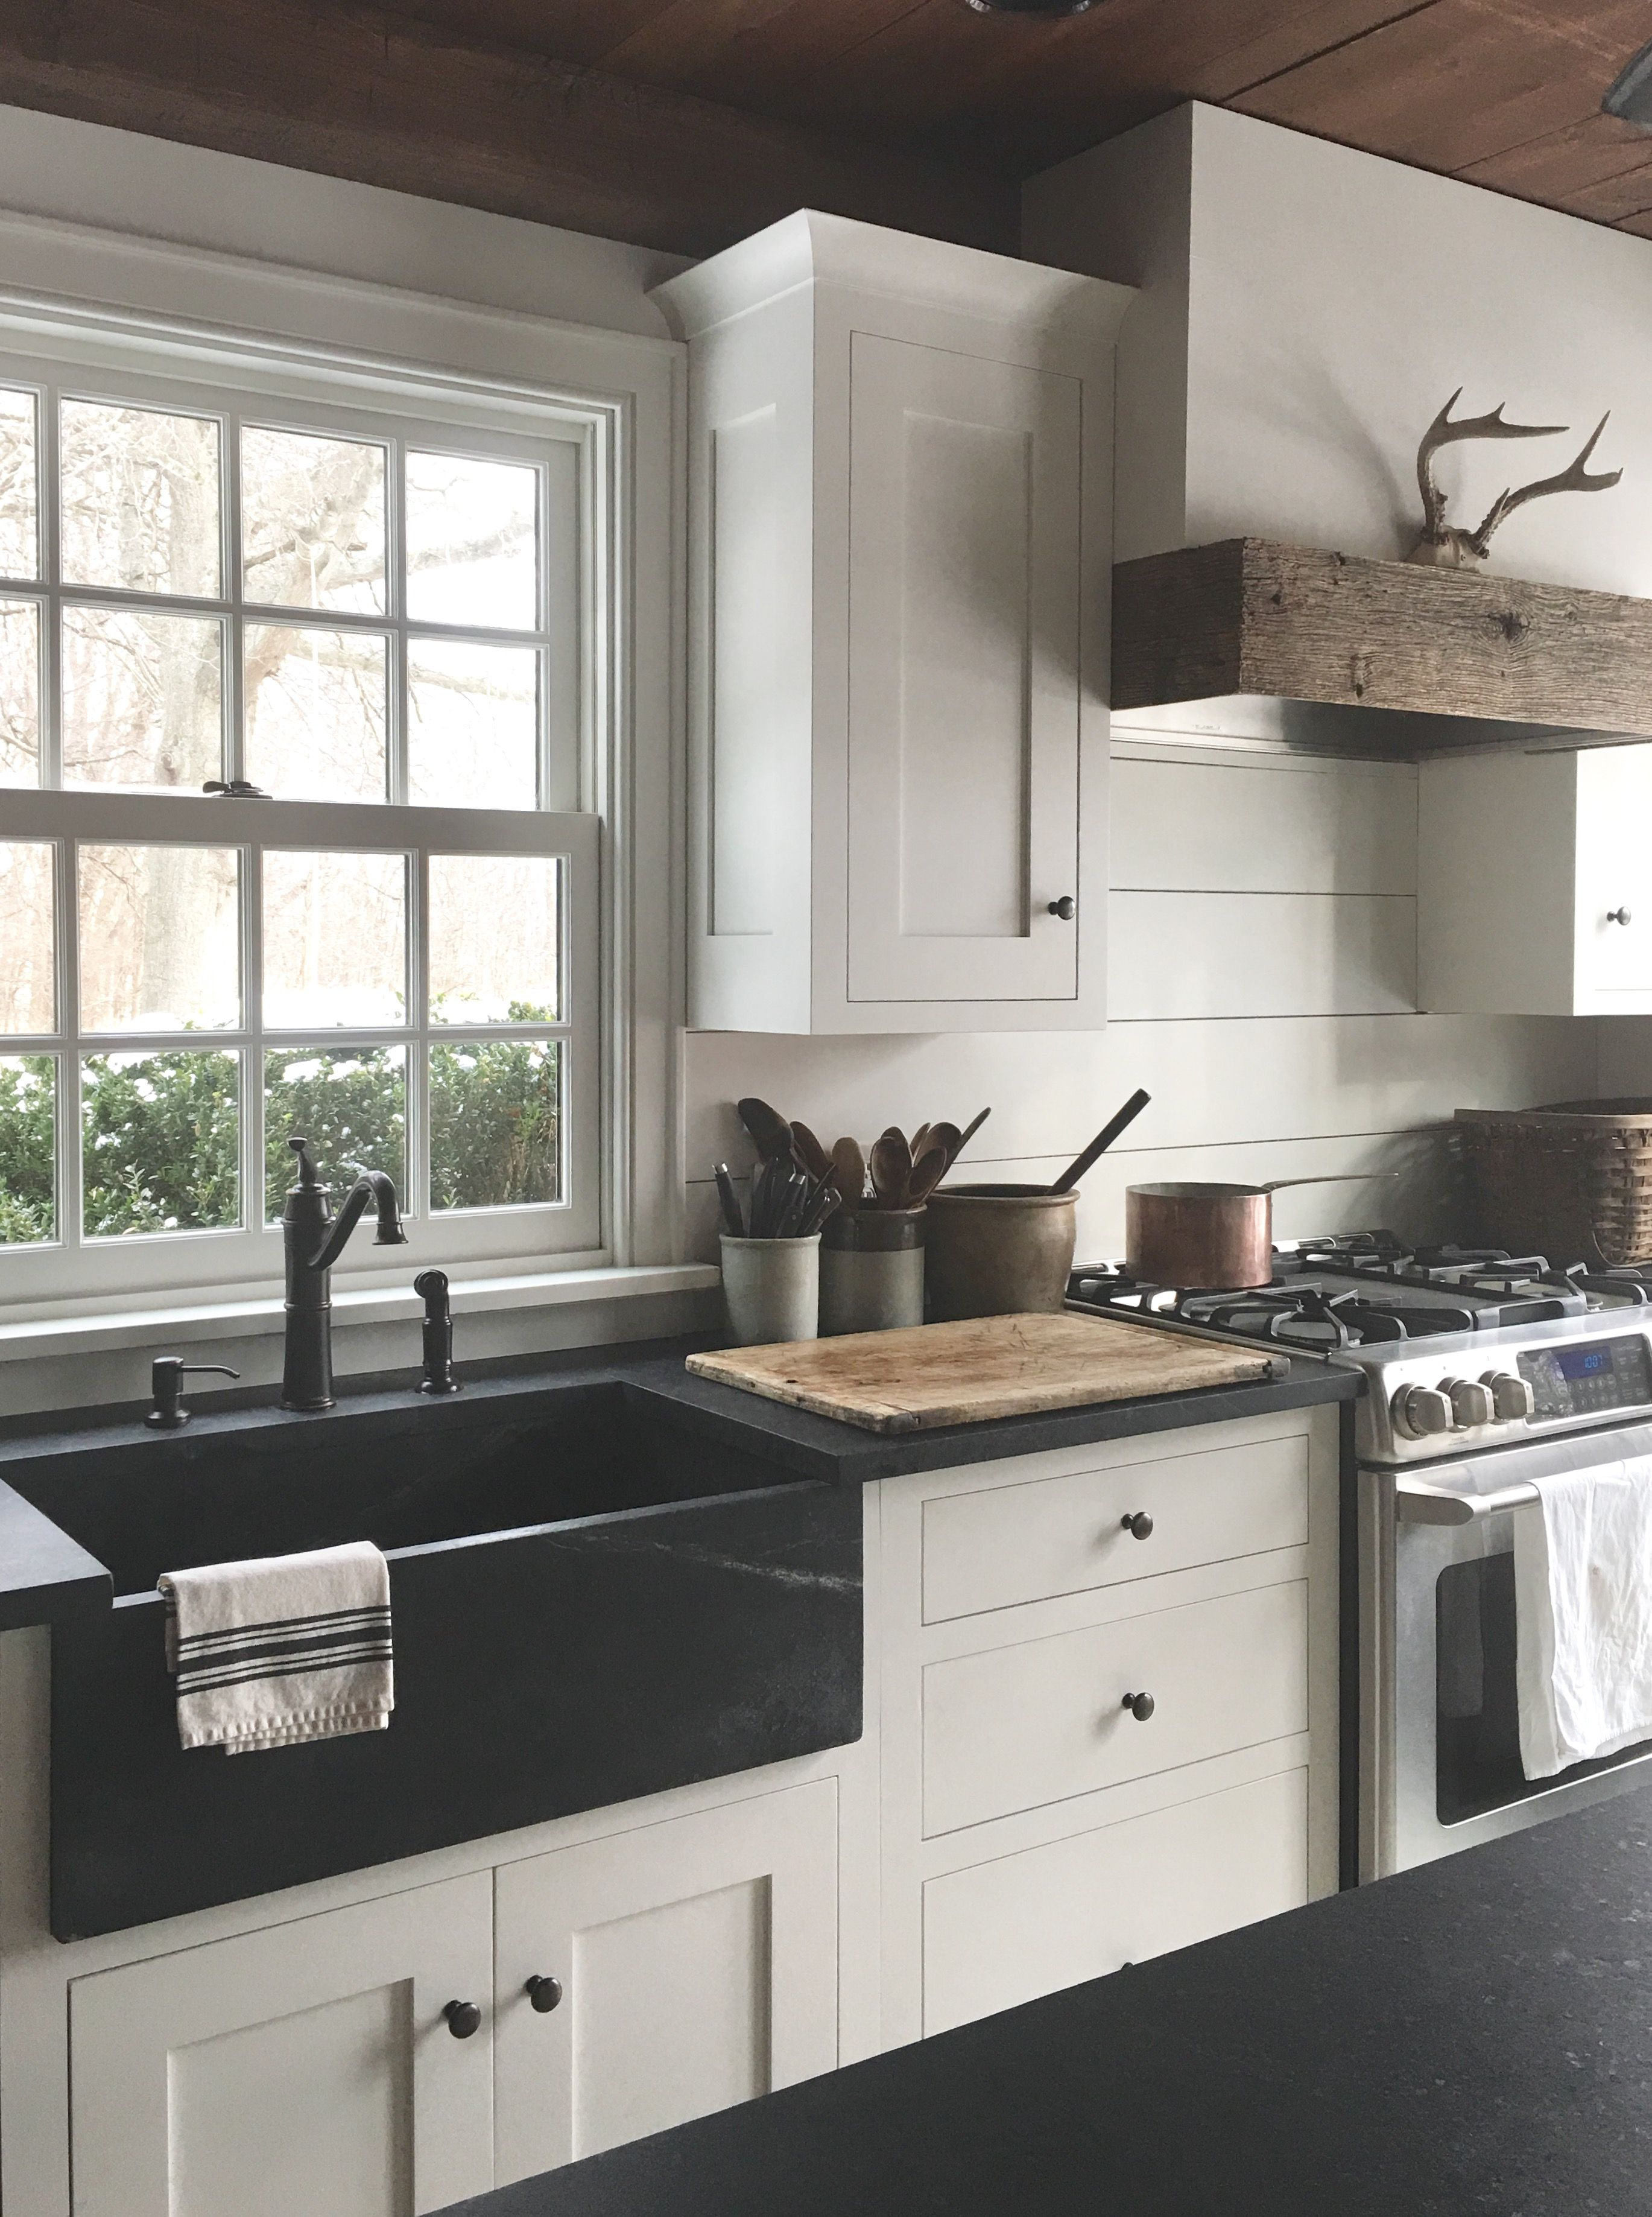 Love This Layout Of Sink Cutting Board And Then Stove Top Range